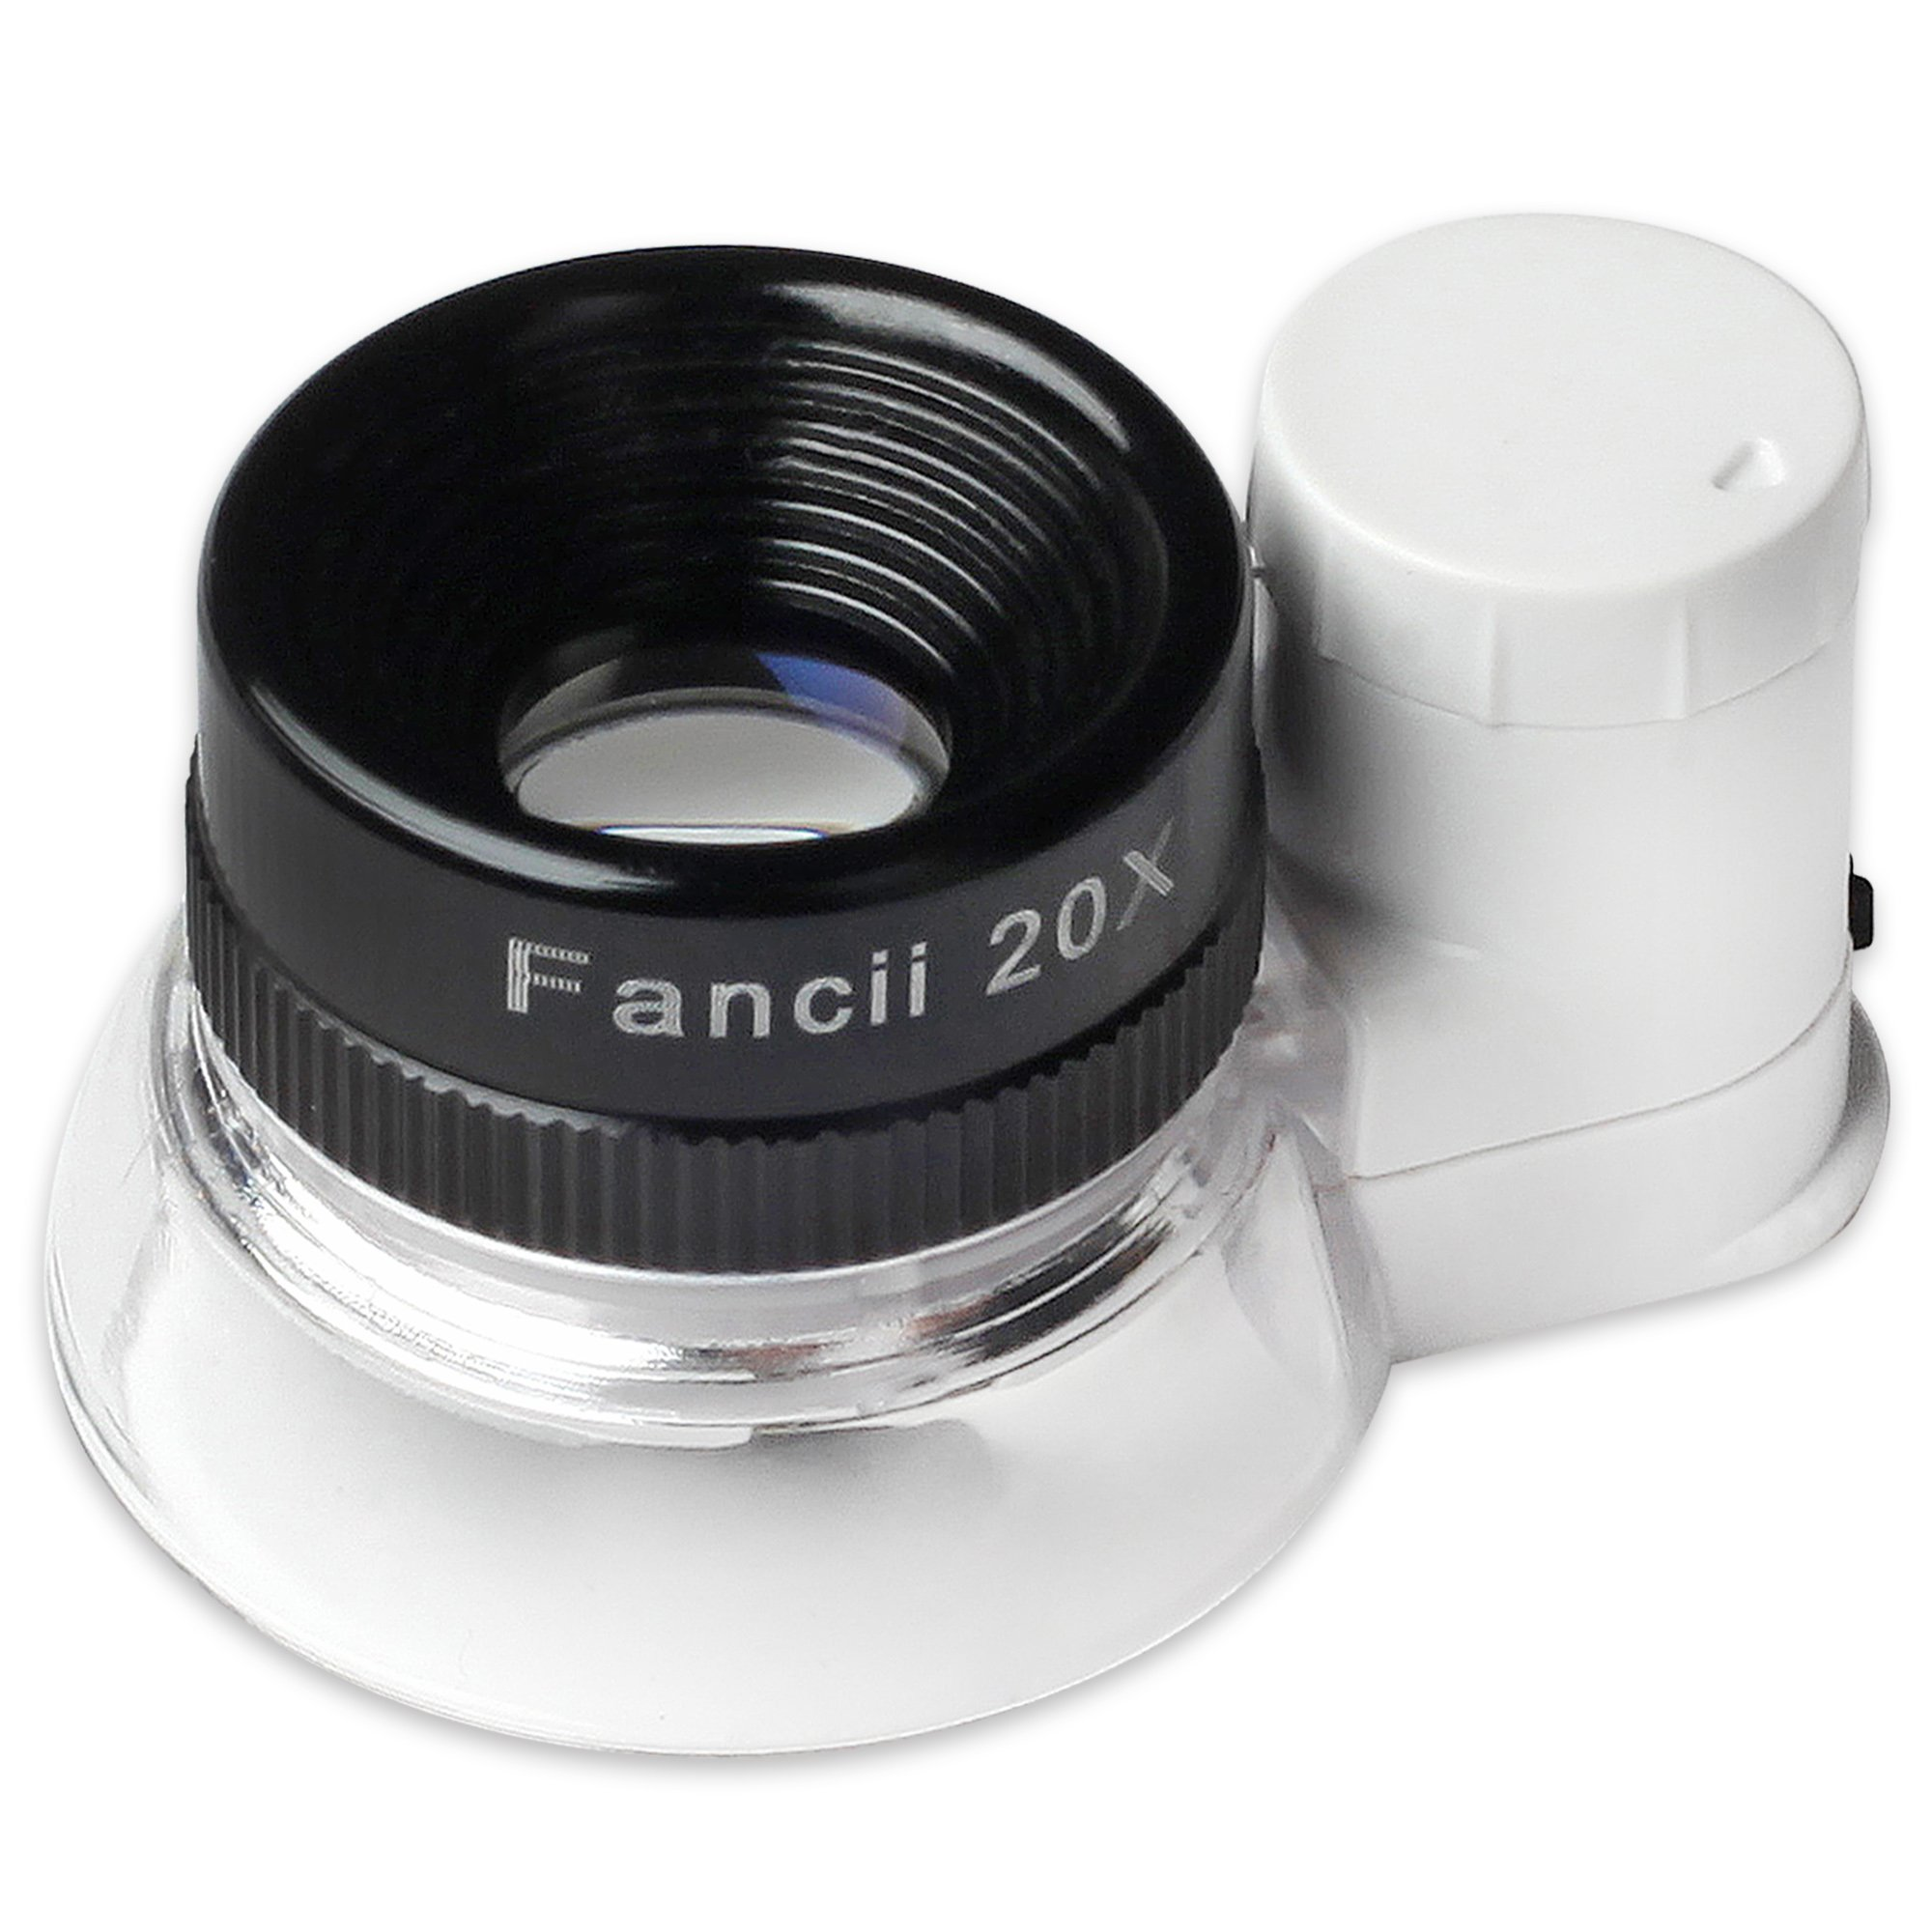 Fancii LED Illuminated 20X Jewelers Loupe Magnifier, Triplet Glass - Premium Aluminum Magnifying Eye Loop Best for Jewelry, Diamonds, Gems, Coins, Engravings and More! by Fancii